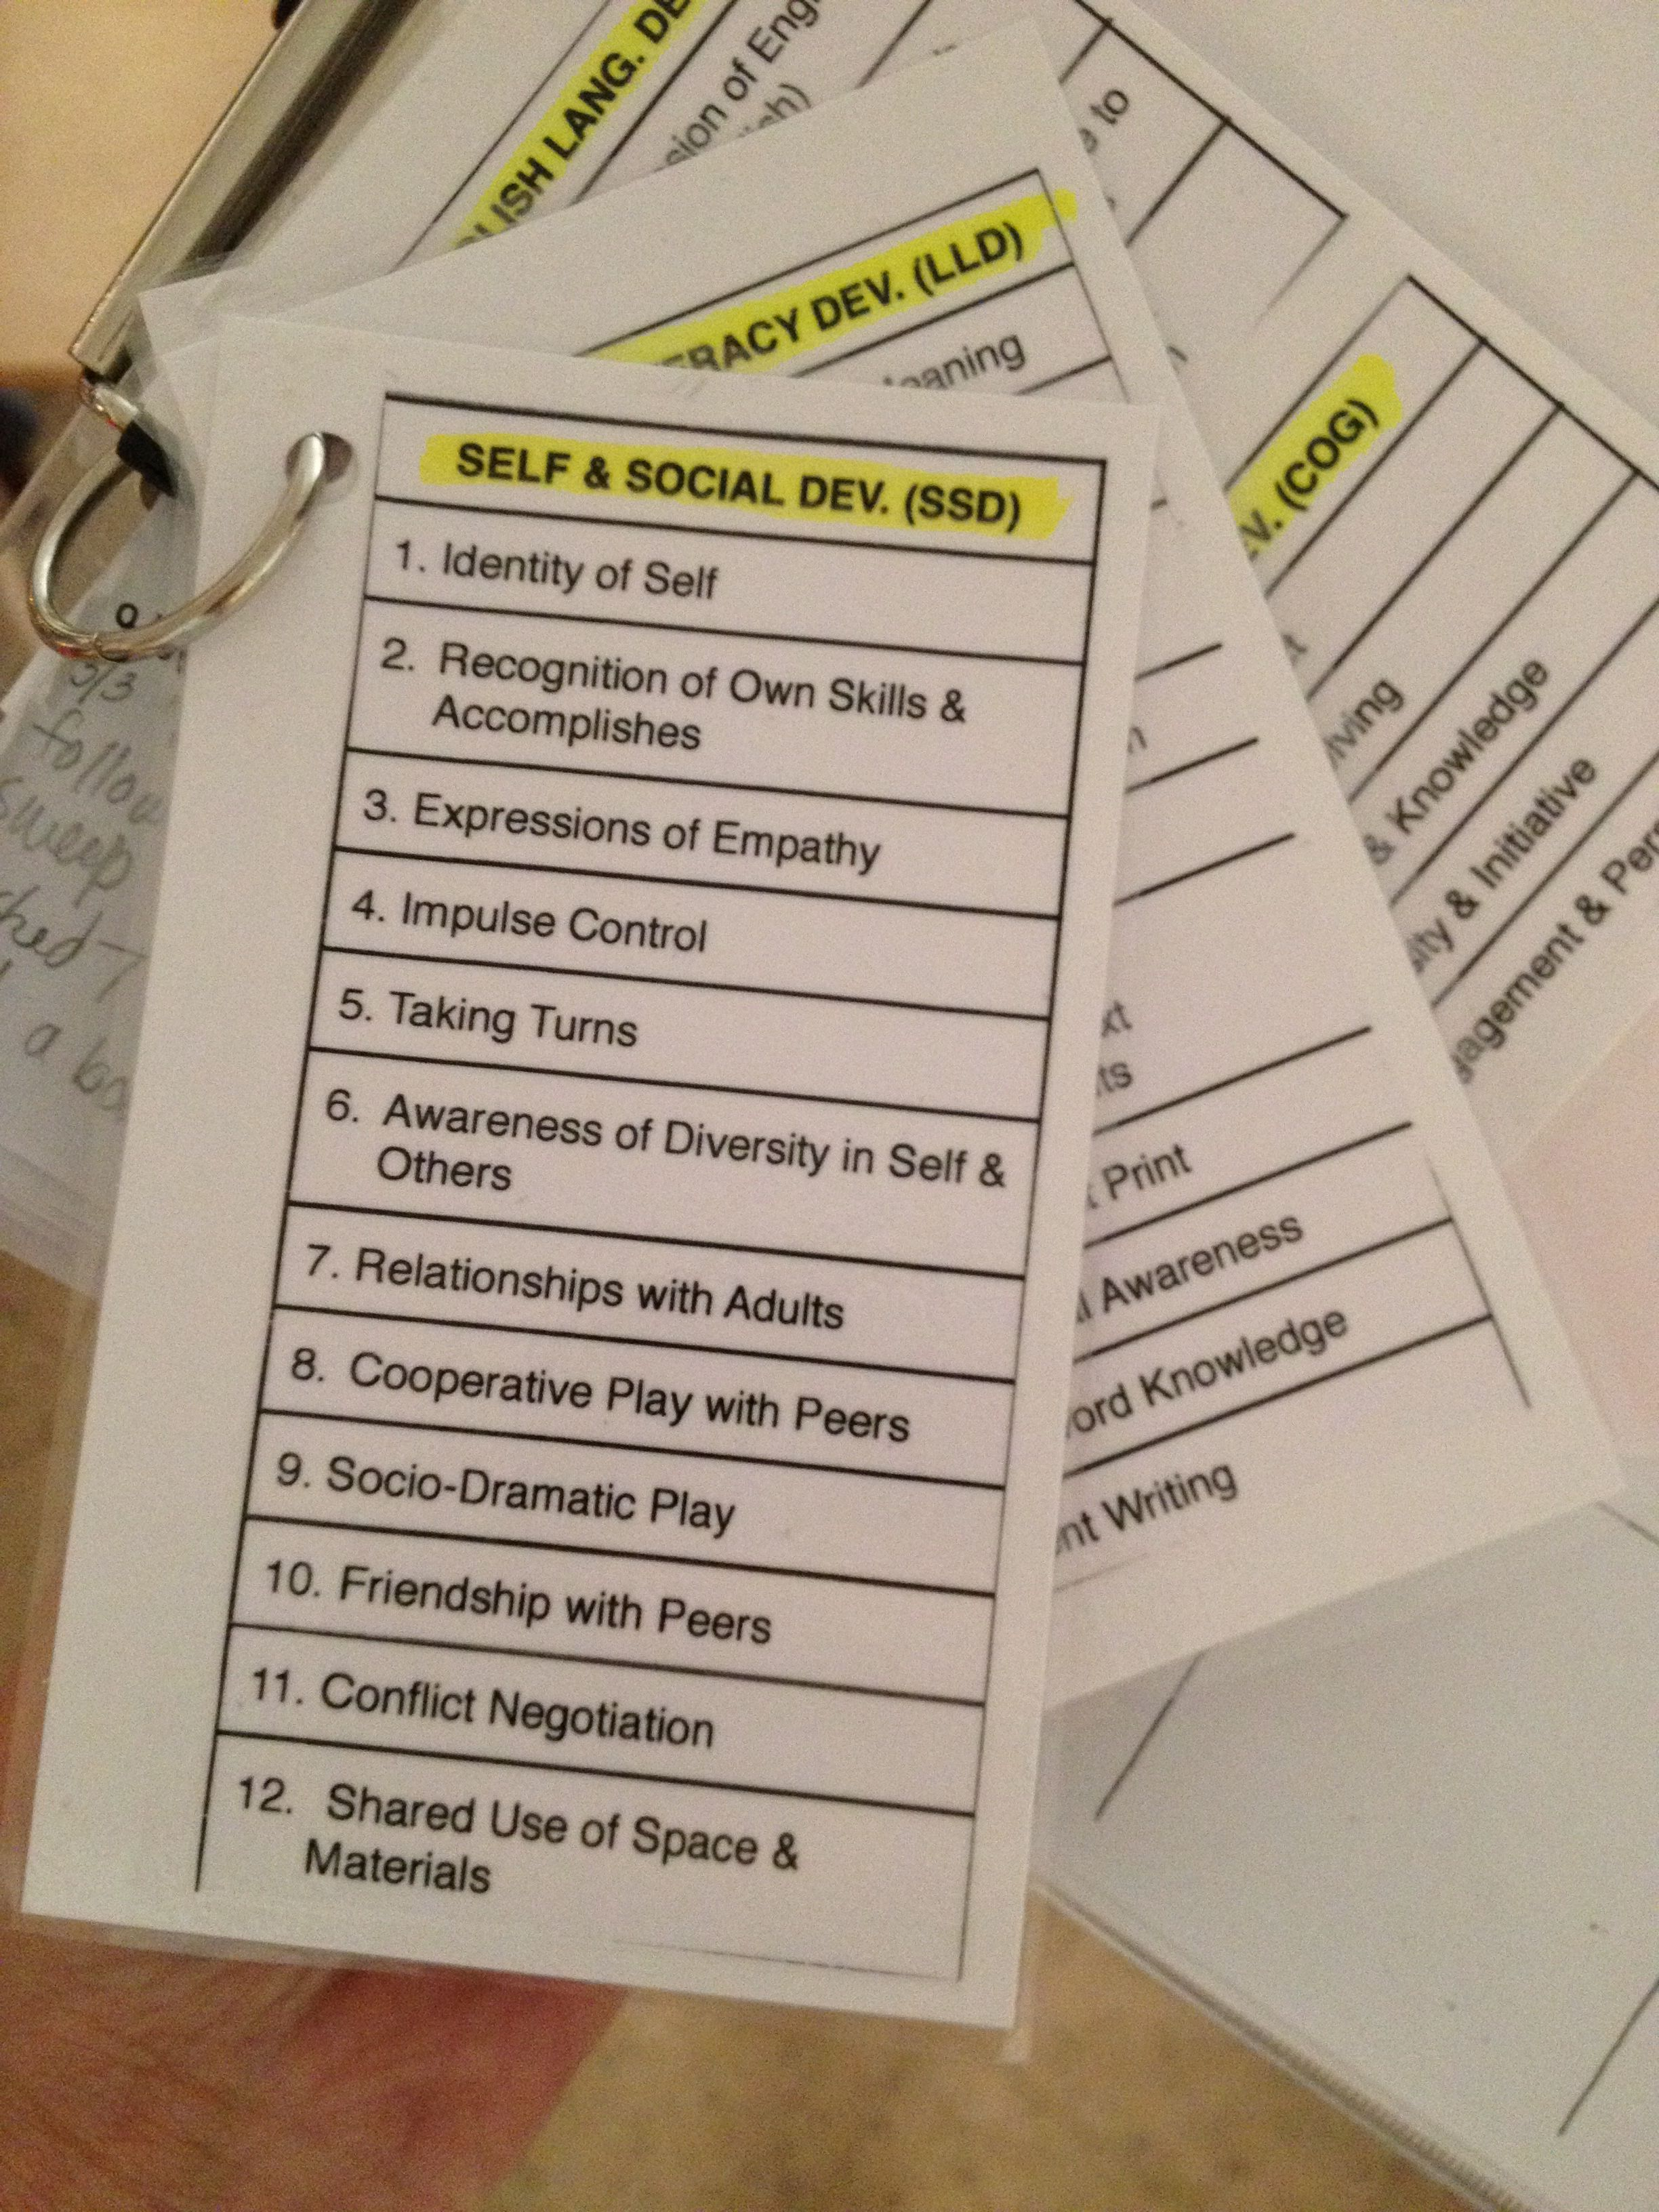 Quick Reference Curriculum Cards Help To Connect The